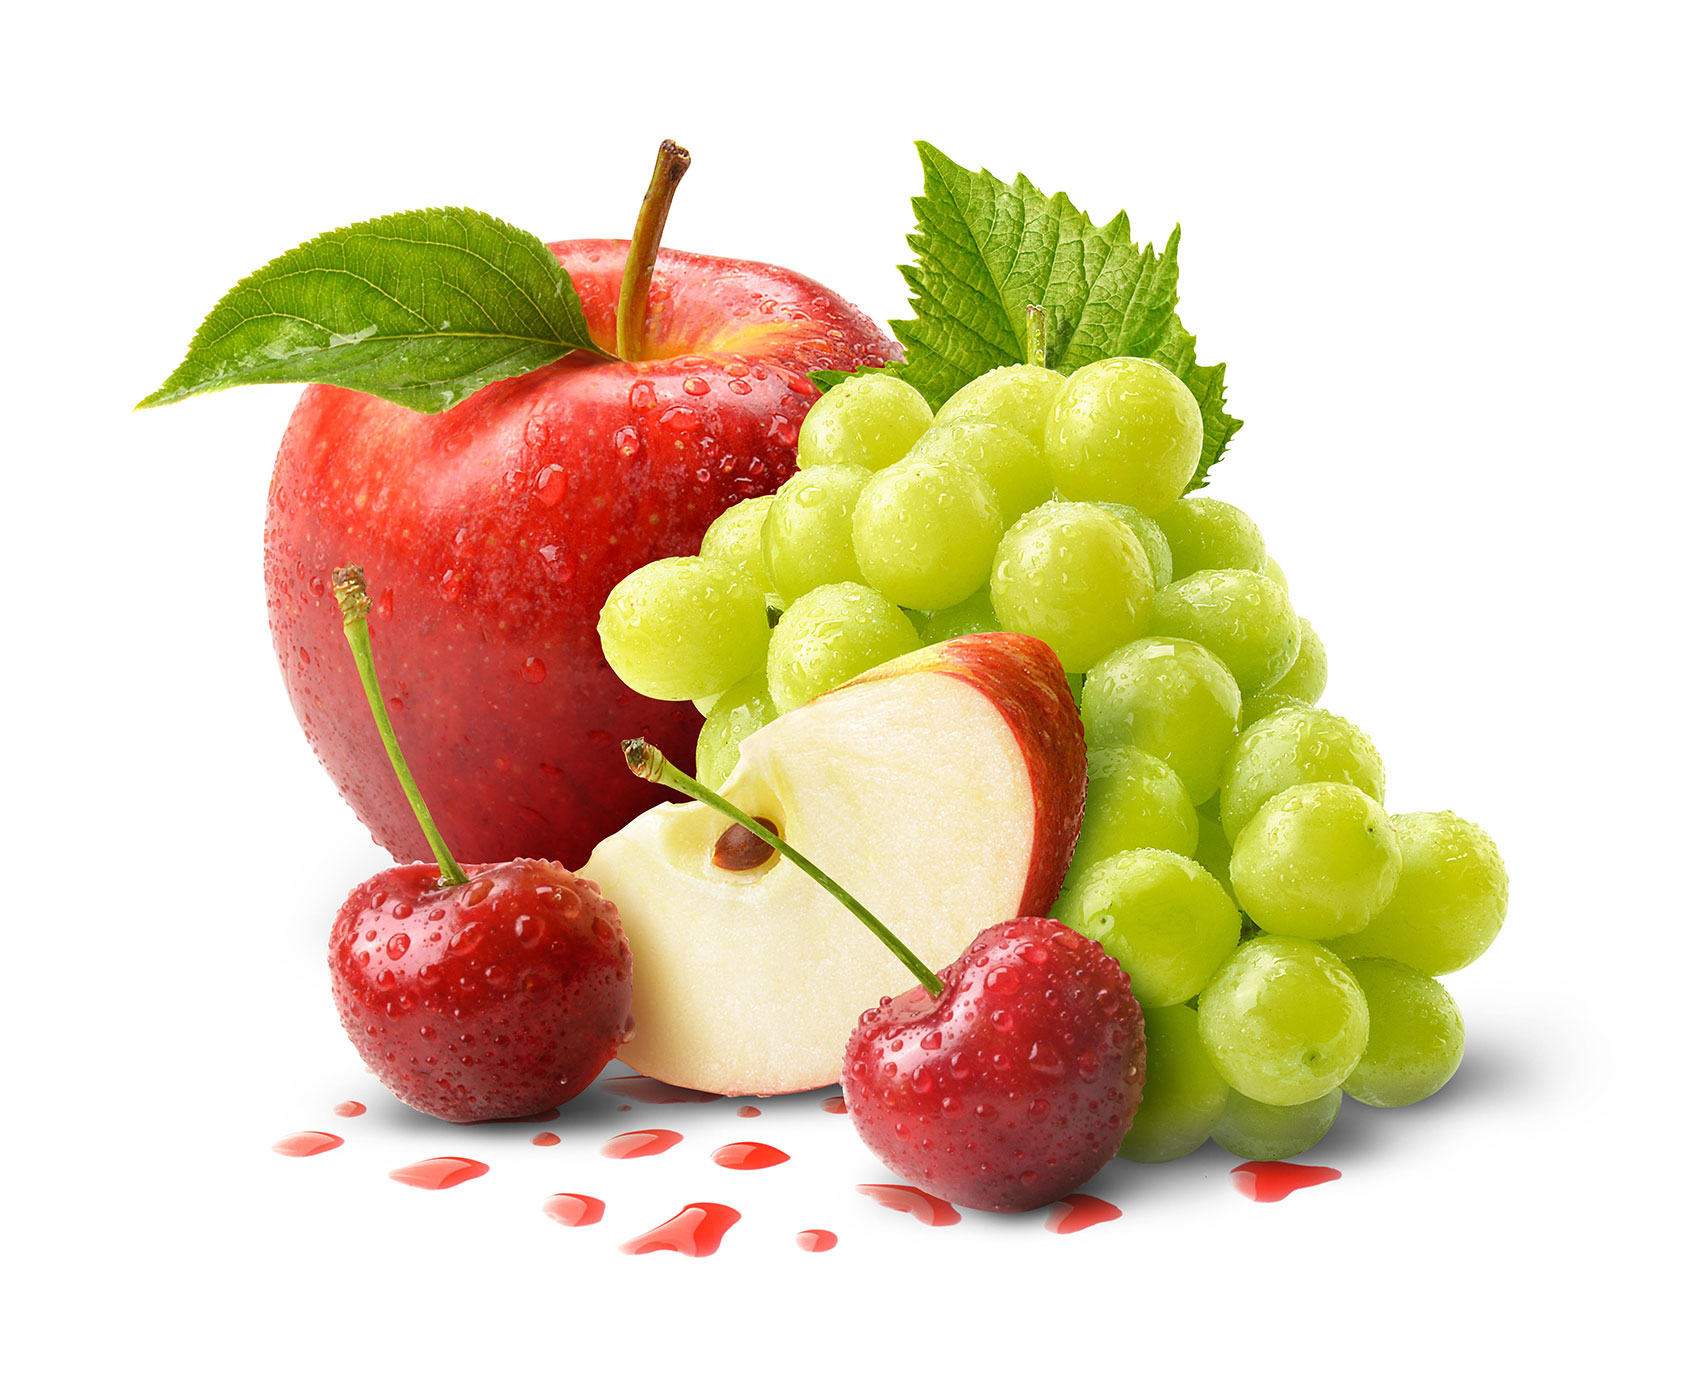 apple_grapes_cherry_fruit